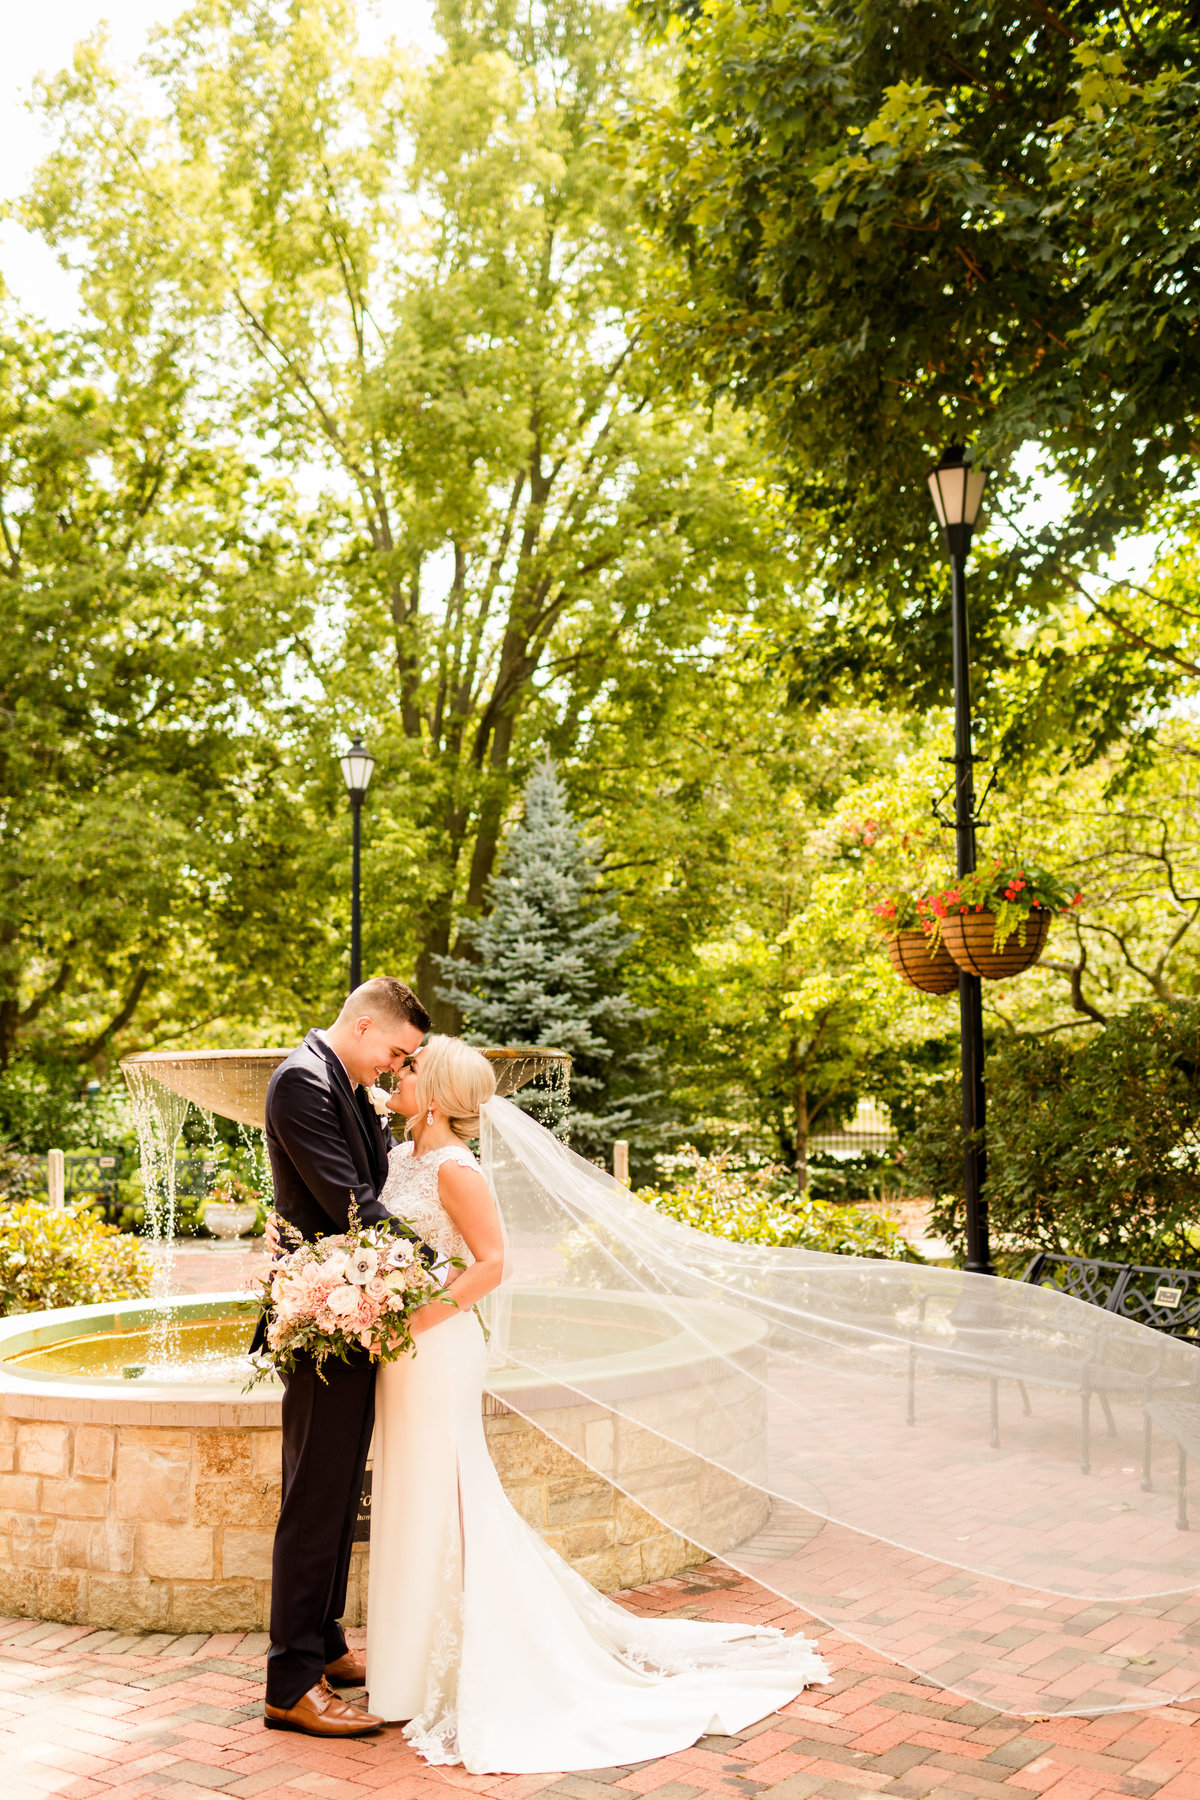 Caitlin and Luke Photography Wedding Engagement Luxury Illinois Destination Colorful Bright Joyful Cheerful Photographer 2424